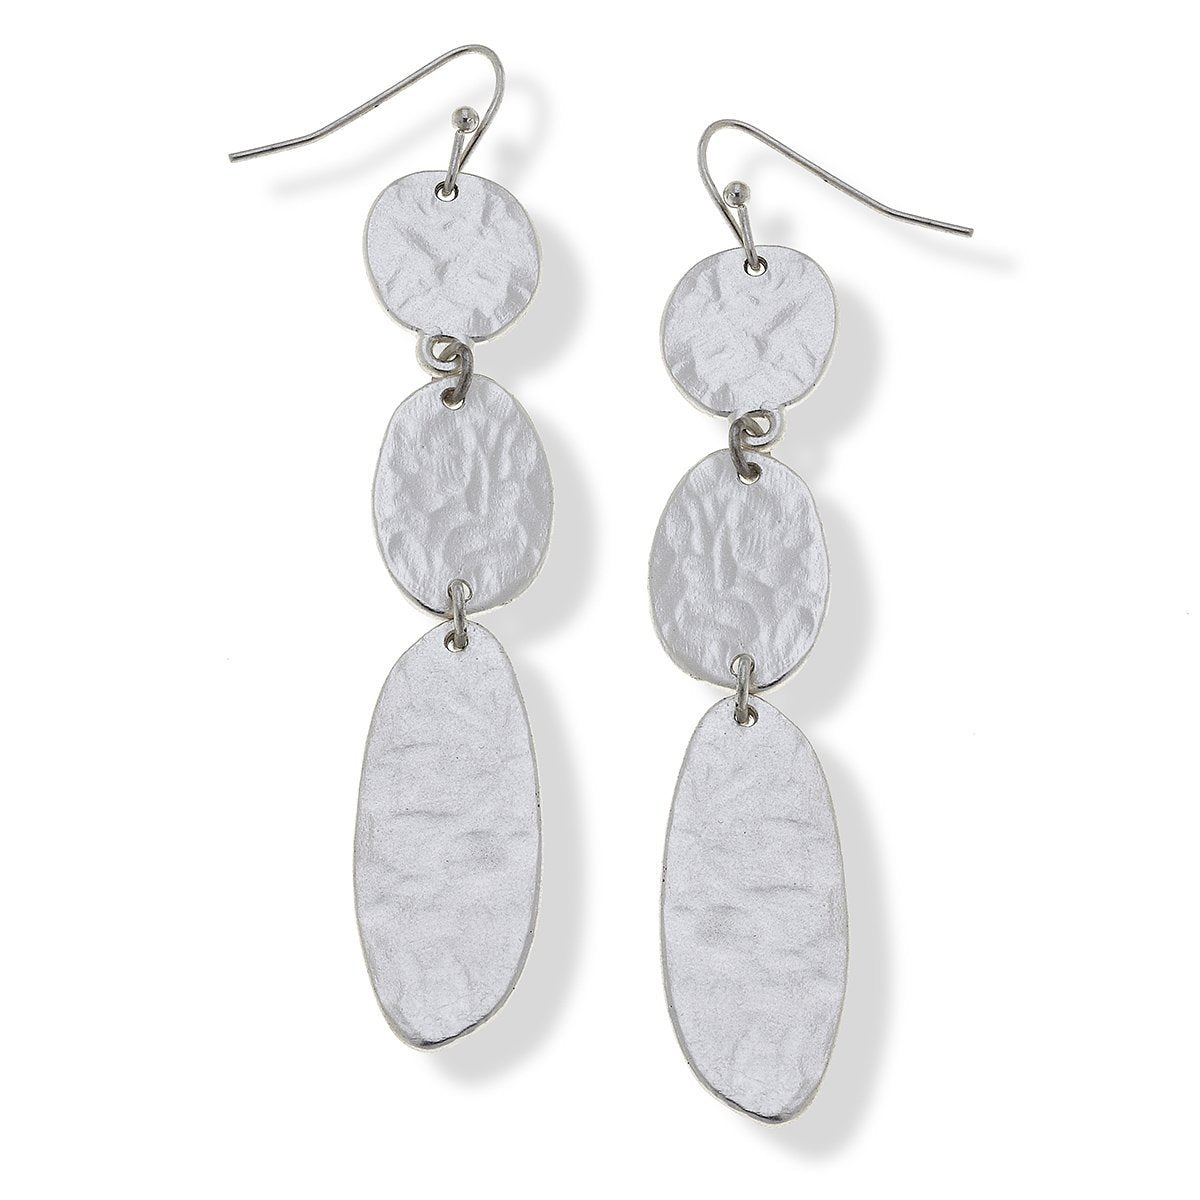 Harlow Linked Drop Earrings in Worn Silver